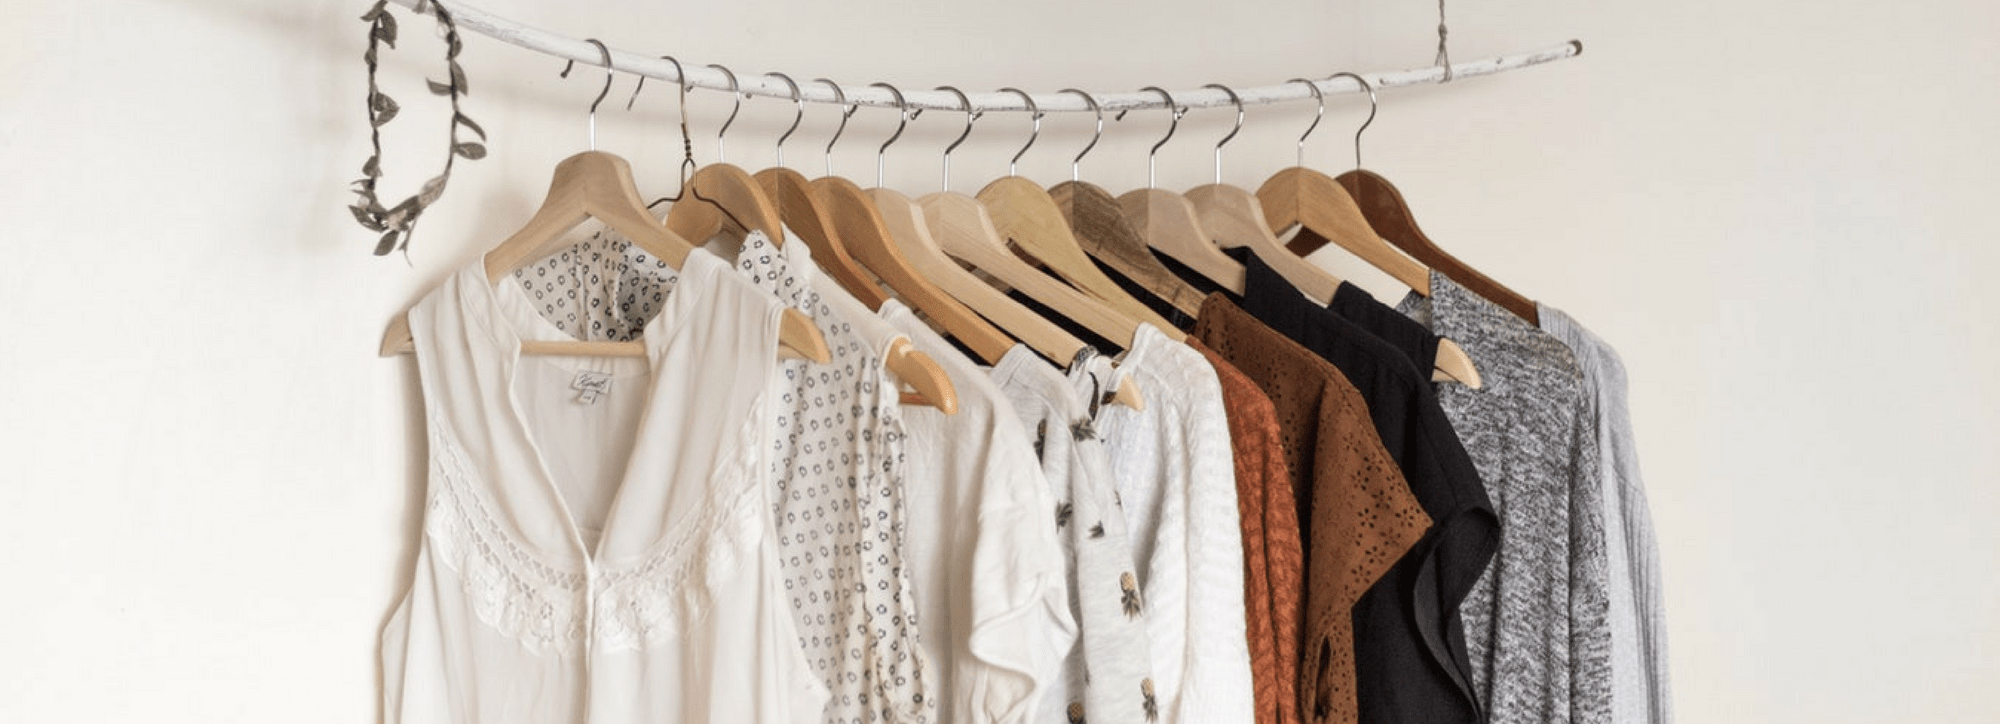 The Sustainable Wardrobe Part 1: Building a Capsule